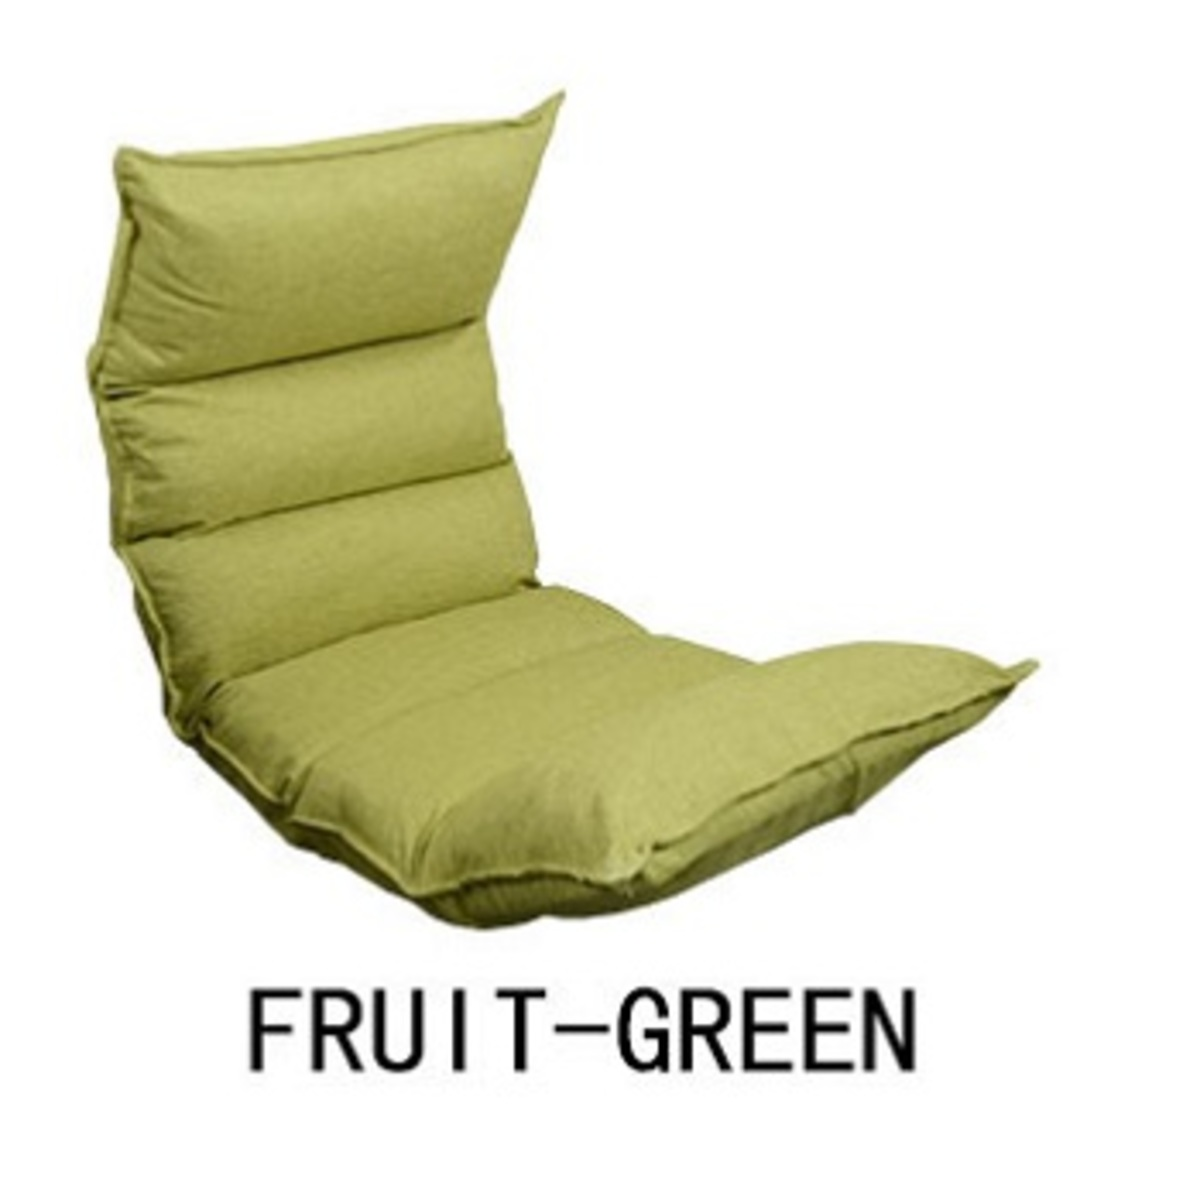 LH011FG Angel Adjustable Lazy Sofa (Fruit Green color)